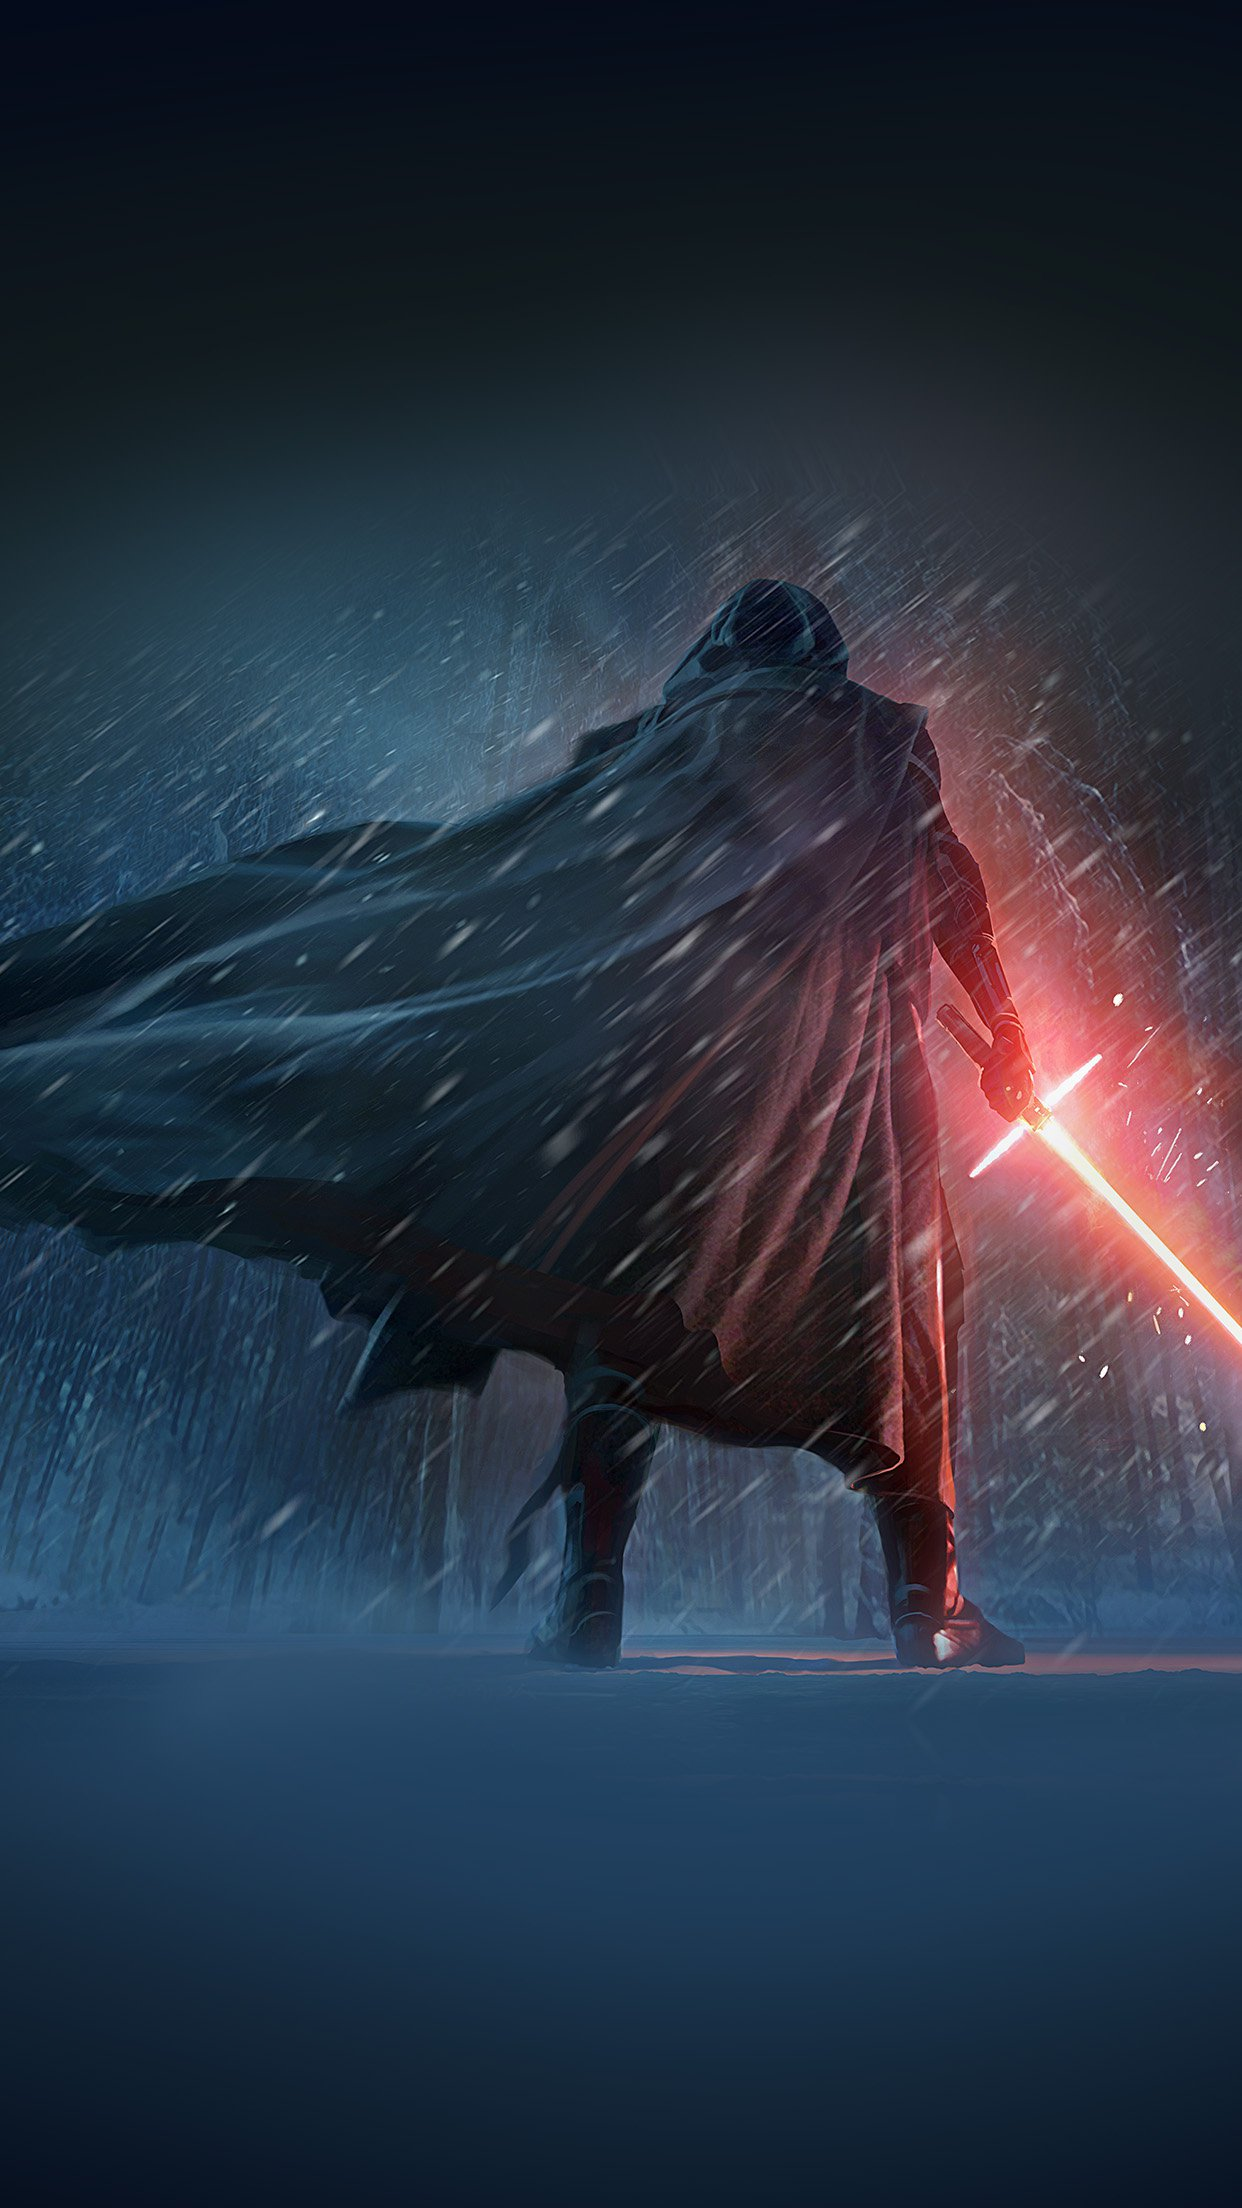 darth vader starwars 7 poster film art android wallpaper android hd wallpapers